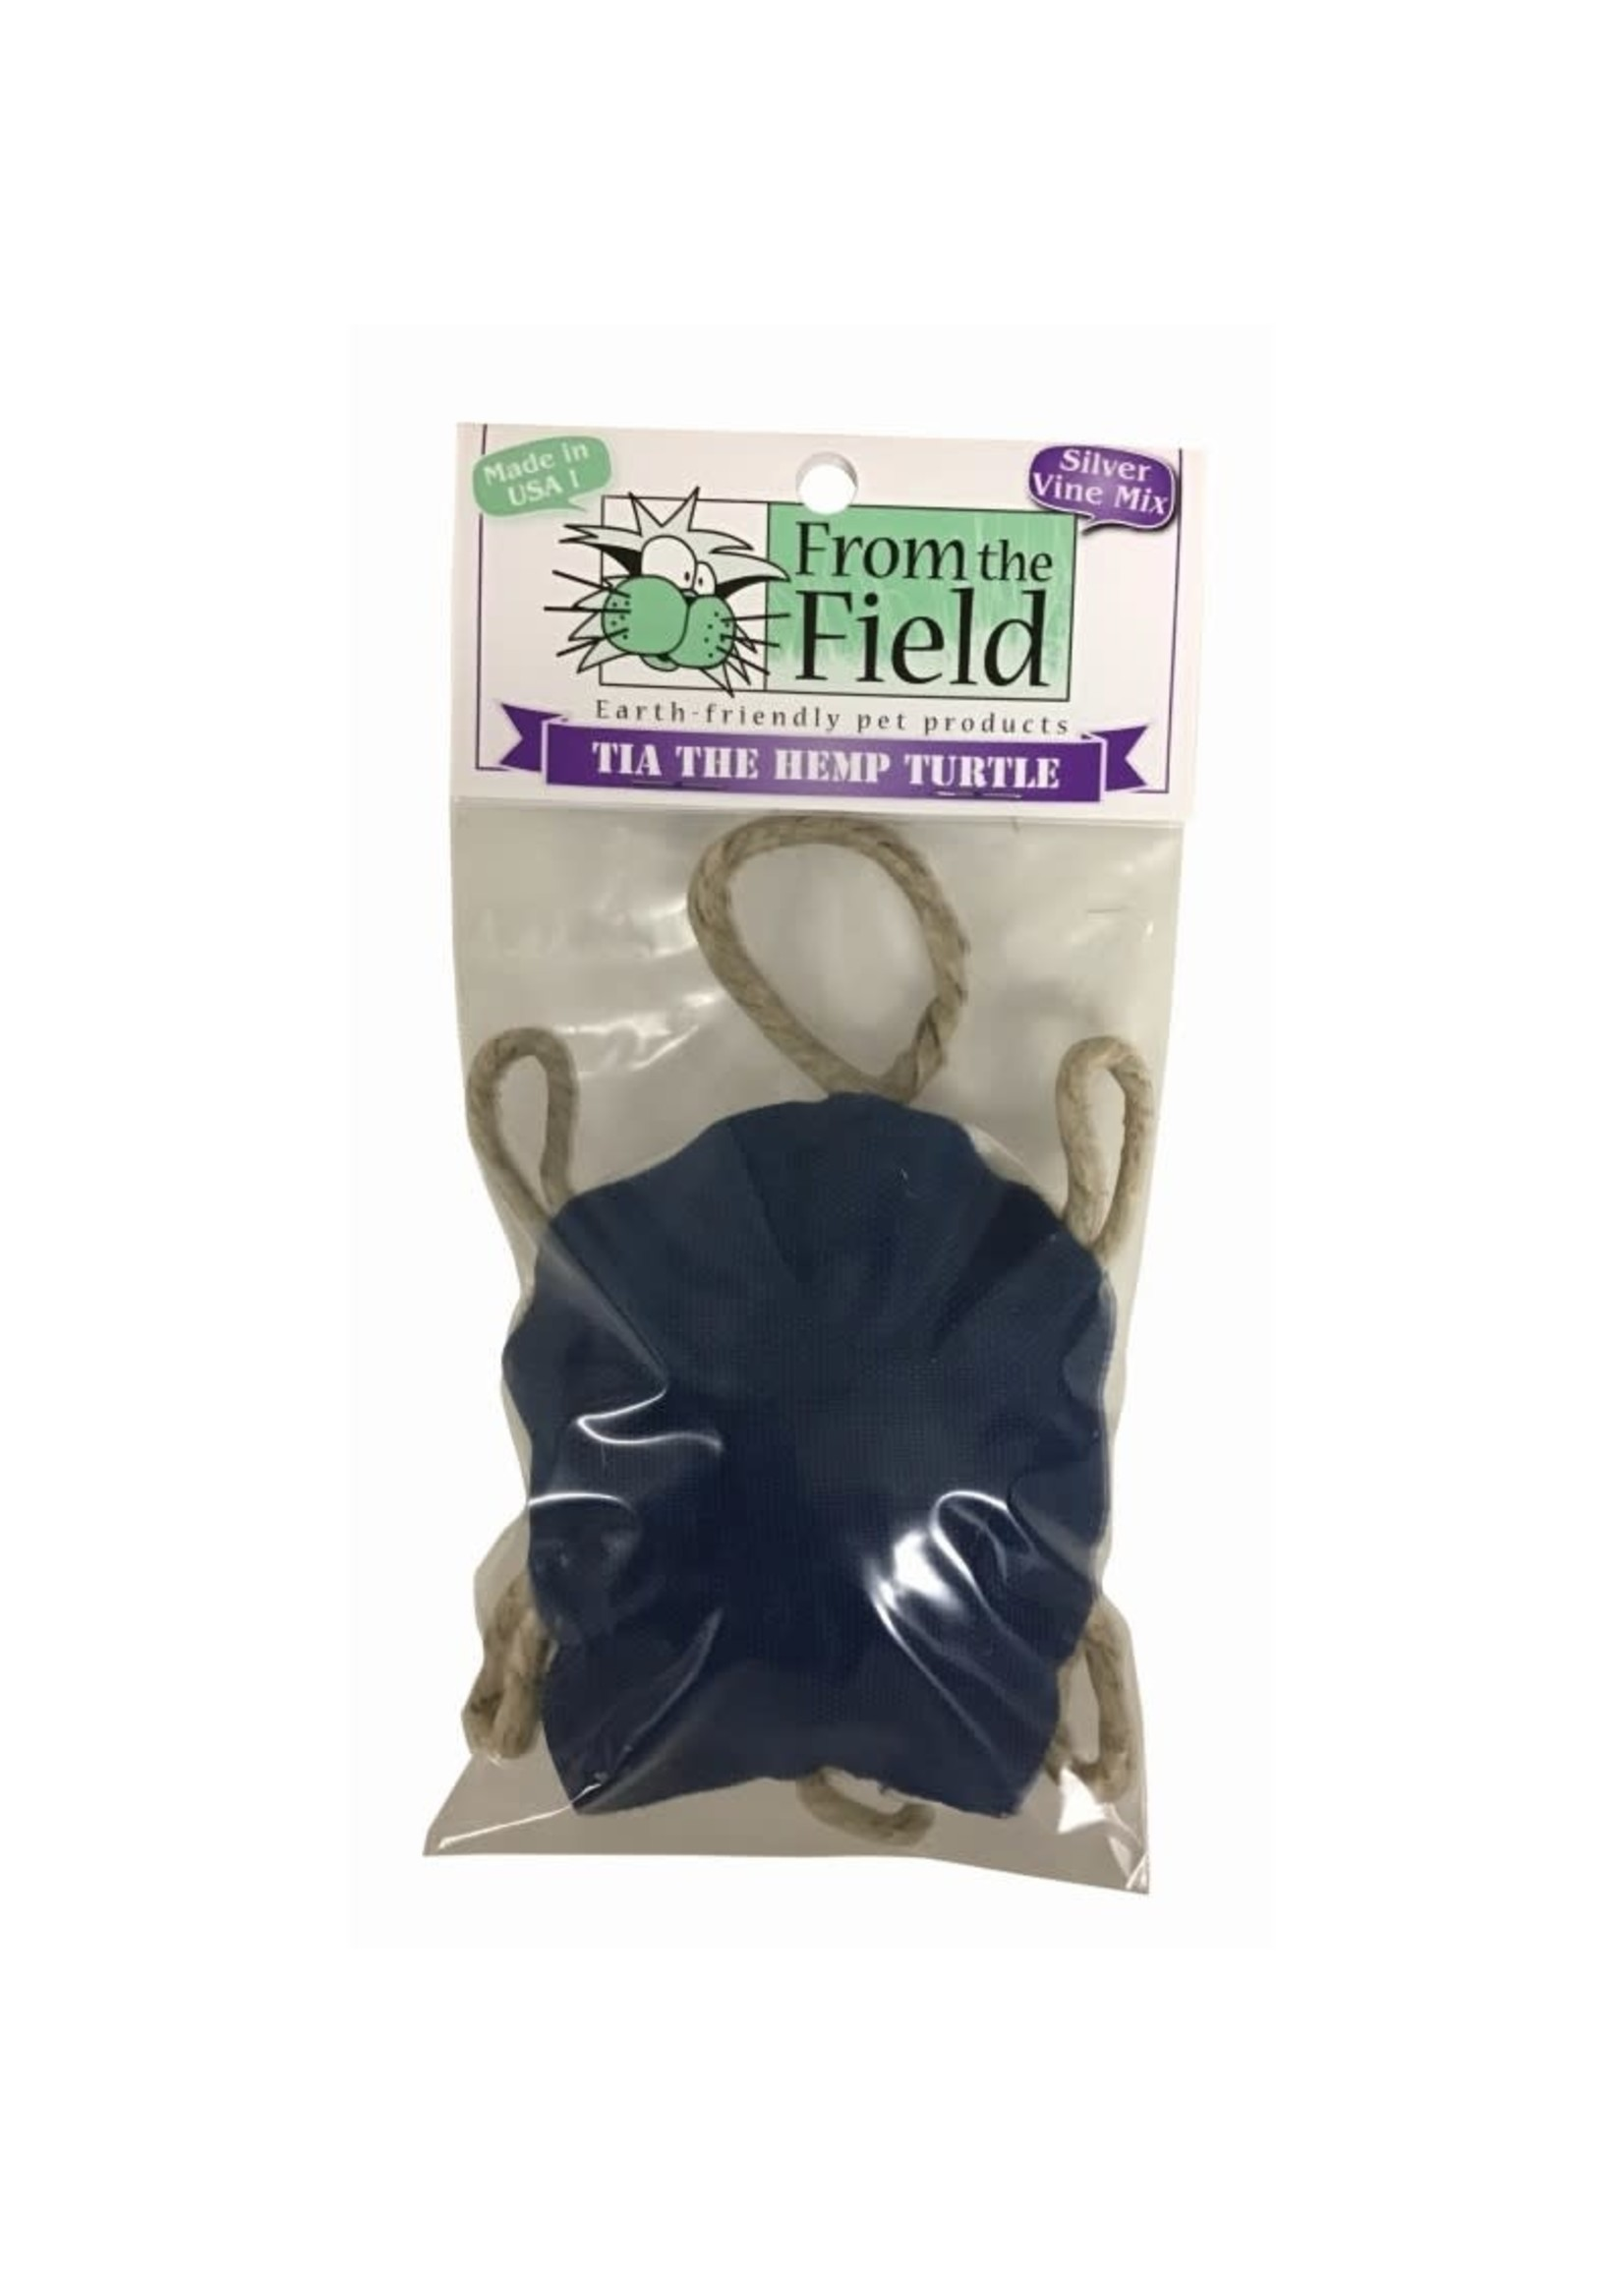 From The Field From the Field Tia Hemp Turtle Silver Vine